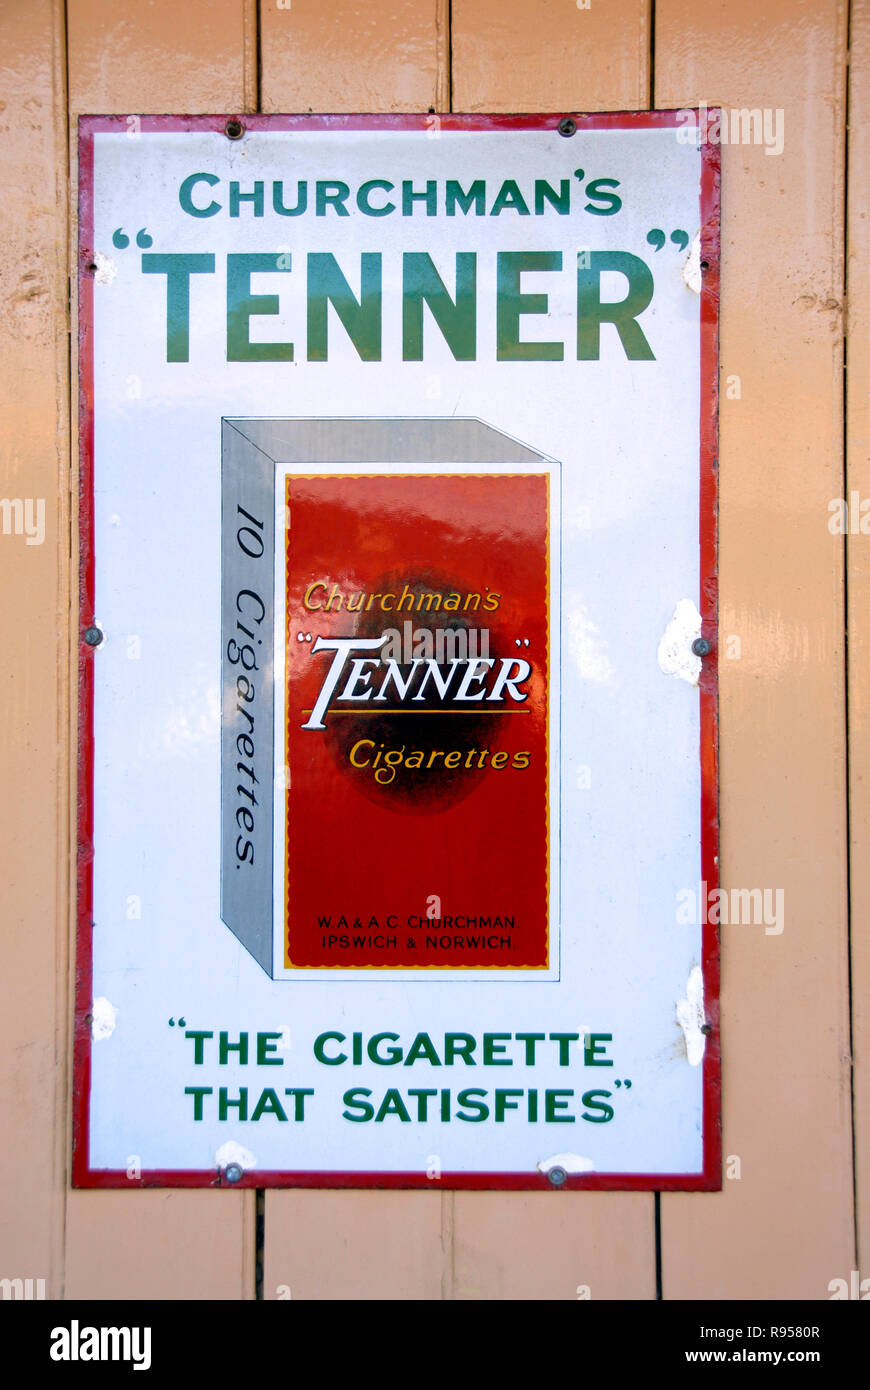 Old metal advertising panel for Churchman's Tenner cigarettes on display on wall at railway station - Stock Image